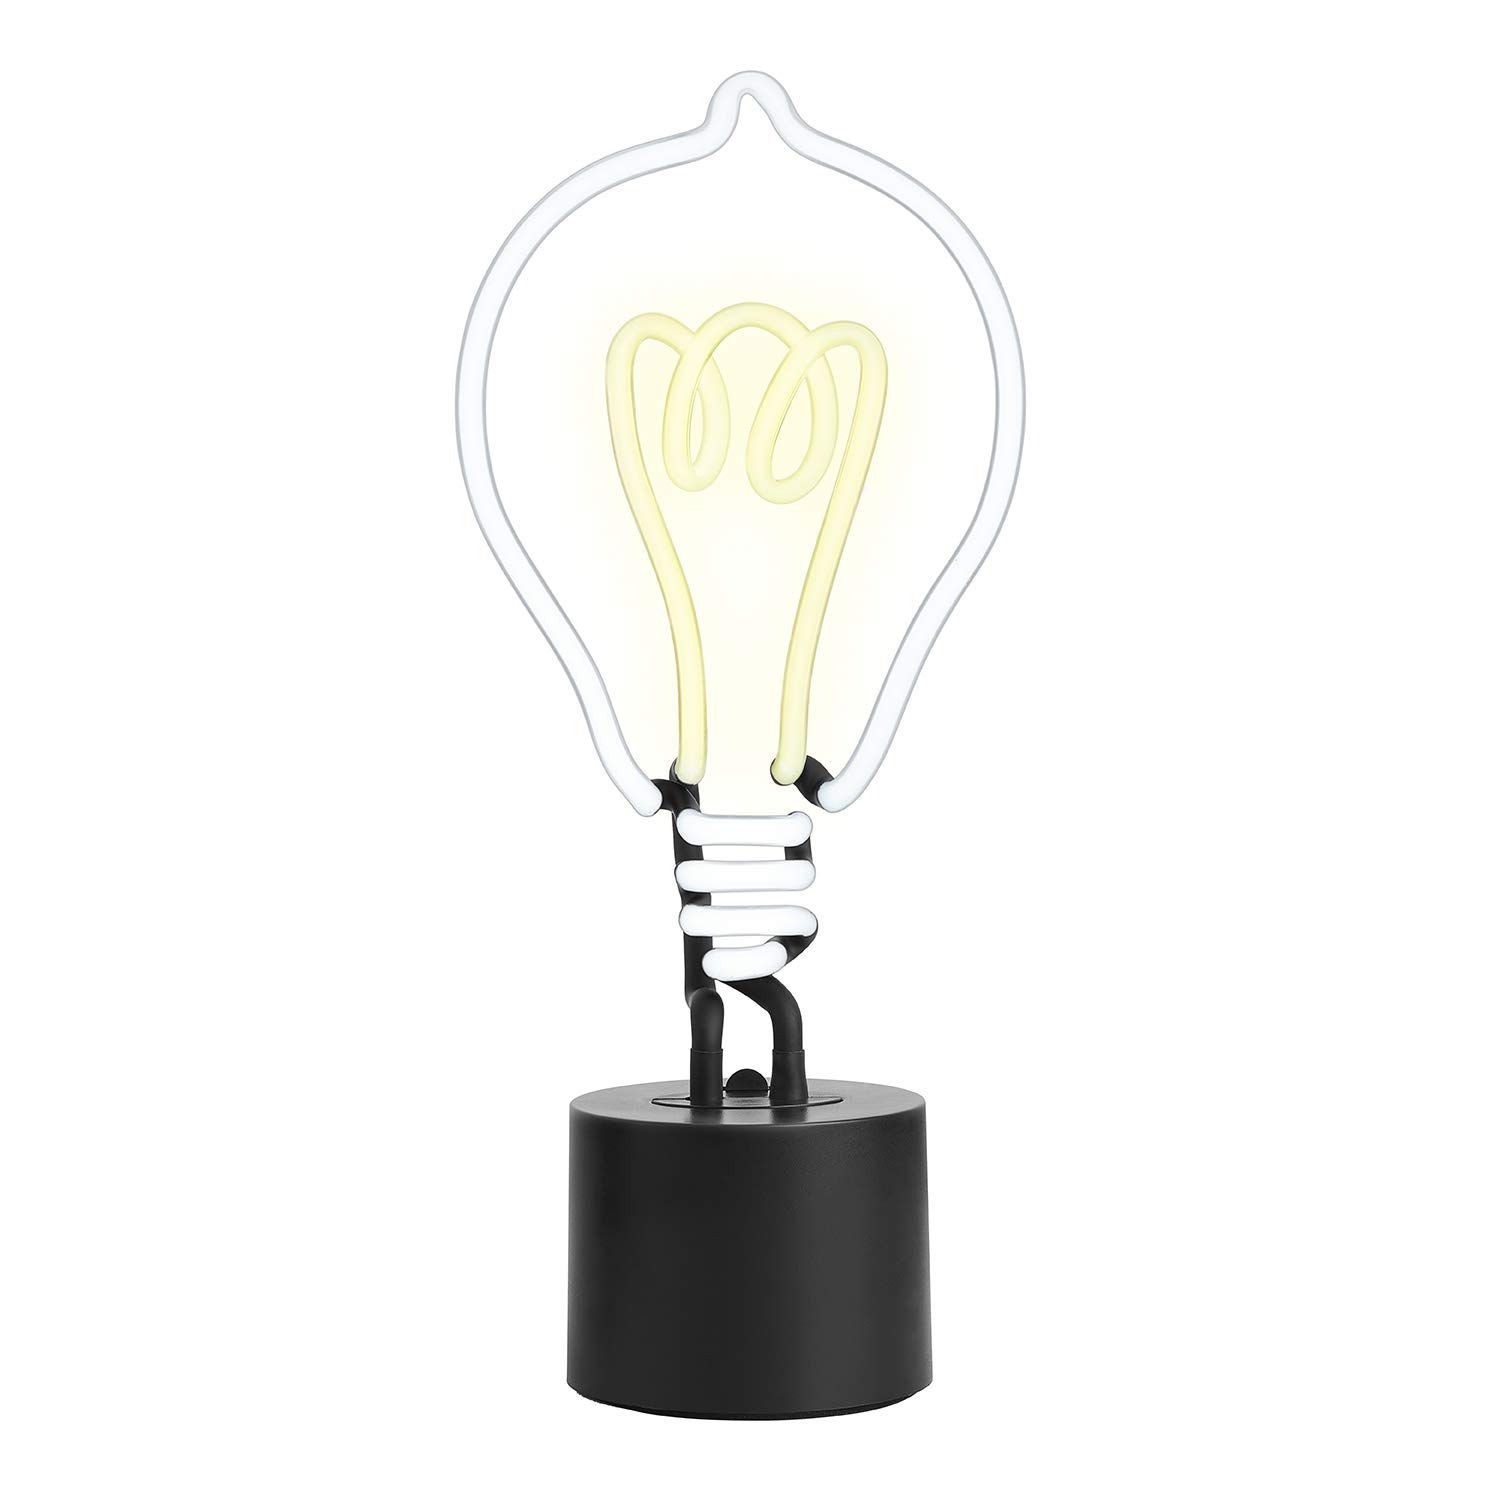 Amped & Co Lightbulb Real Neon Light Handcrafted Novelty Desk Lamp, Large 14x6, White/Yellow Glow